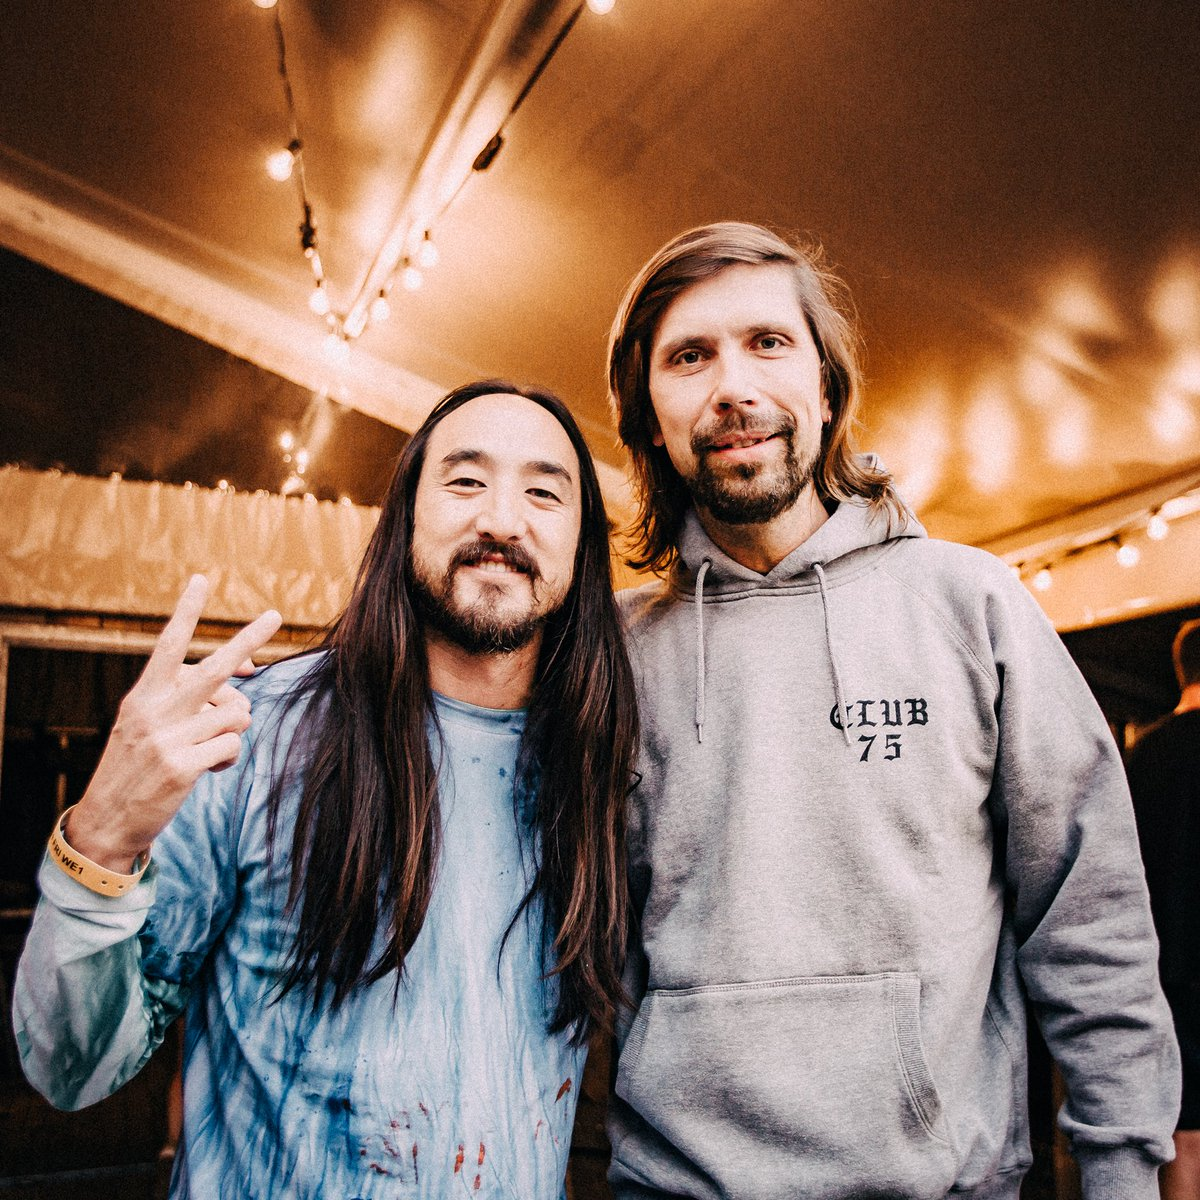 So much love to u Pedro. U inspired me to find the essence of how to harness my energy from my roots and build a small but strong community and culture around that passion & back in 06 u believed in what we were doing in LA in our little Dim Mak world and I'll never forget that.